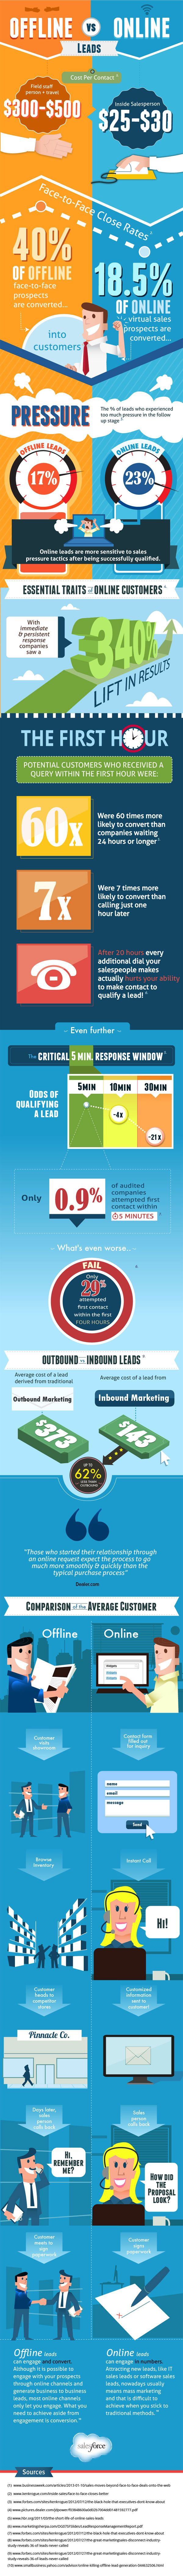 #INFOgraphic > Online vs Offline Leads: A very useful infographic both for traditional and digital salesmen as well as marketers, that attempts a side by side comparison of  offline and online leads, and reveals striking facts about response and follow up timings.  > http://infographicsmania.com/online-vs-offline-leads/?utm_source=Pinterest&utm_medium=INFOGRAPHICSMANIA&utm_campaign=SNAP